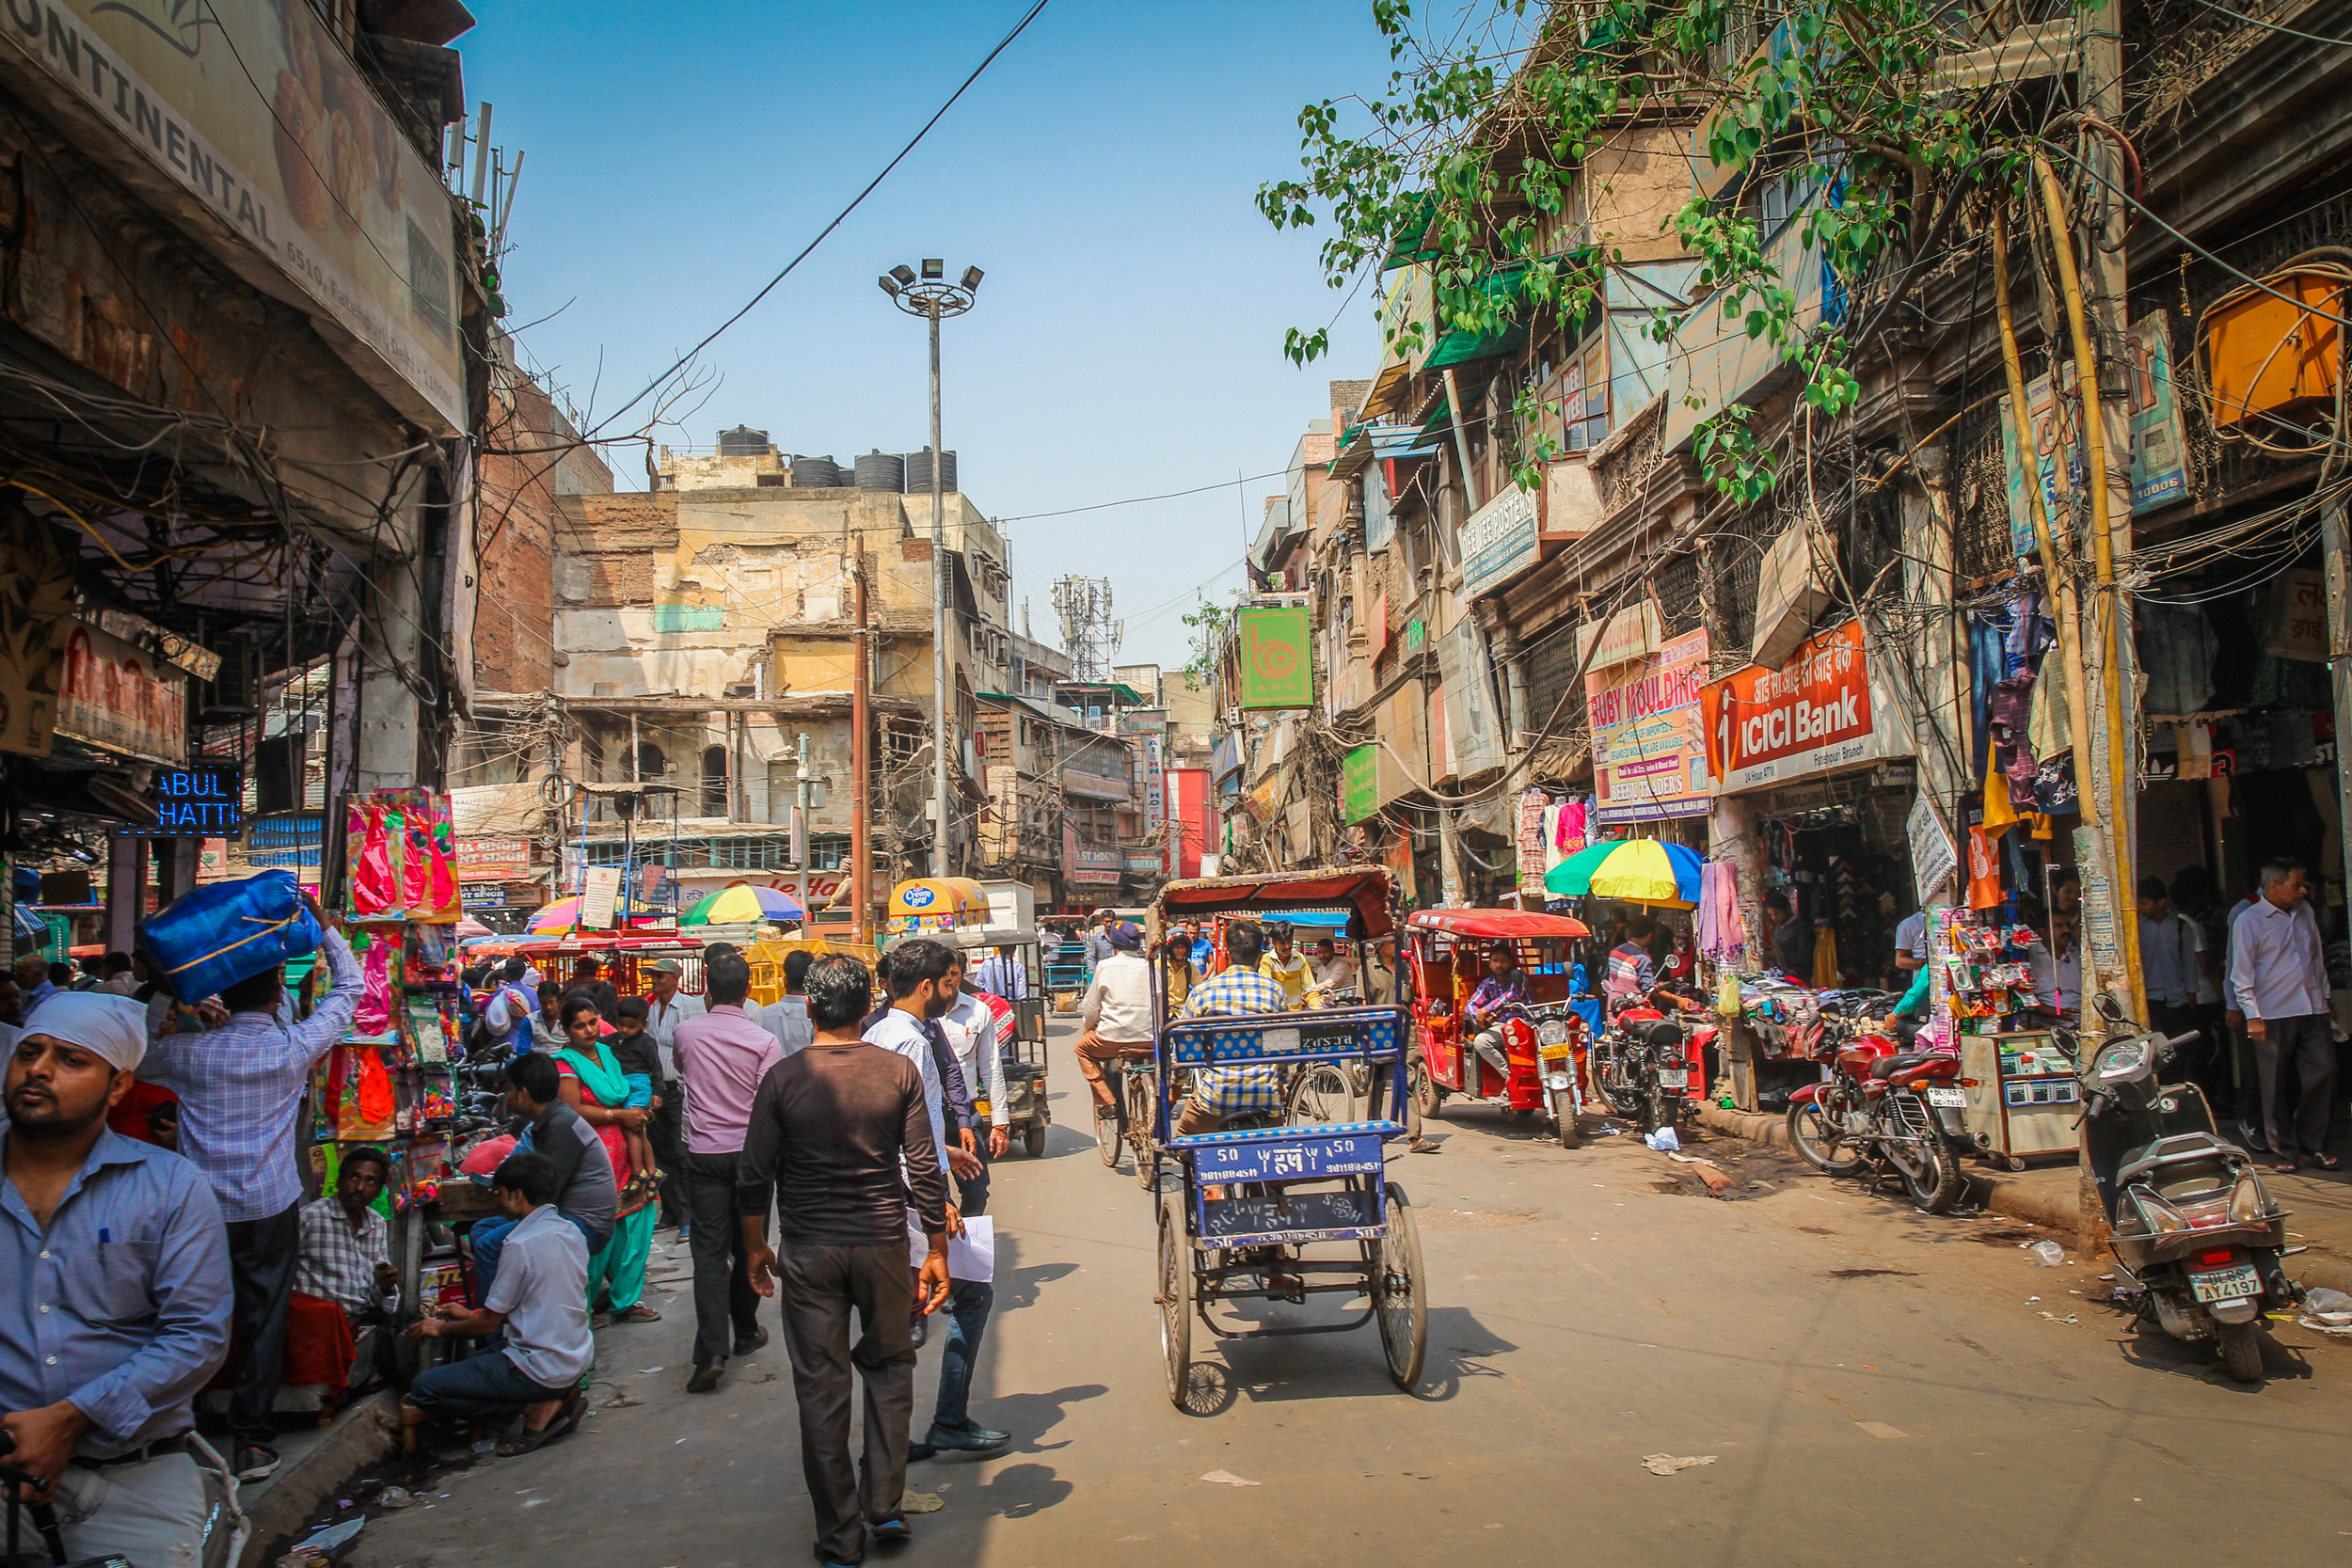 withkidsontheroad_India_chandni_chowk-2.JPG